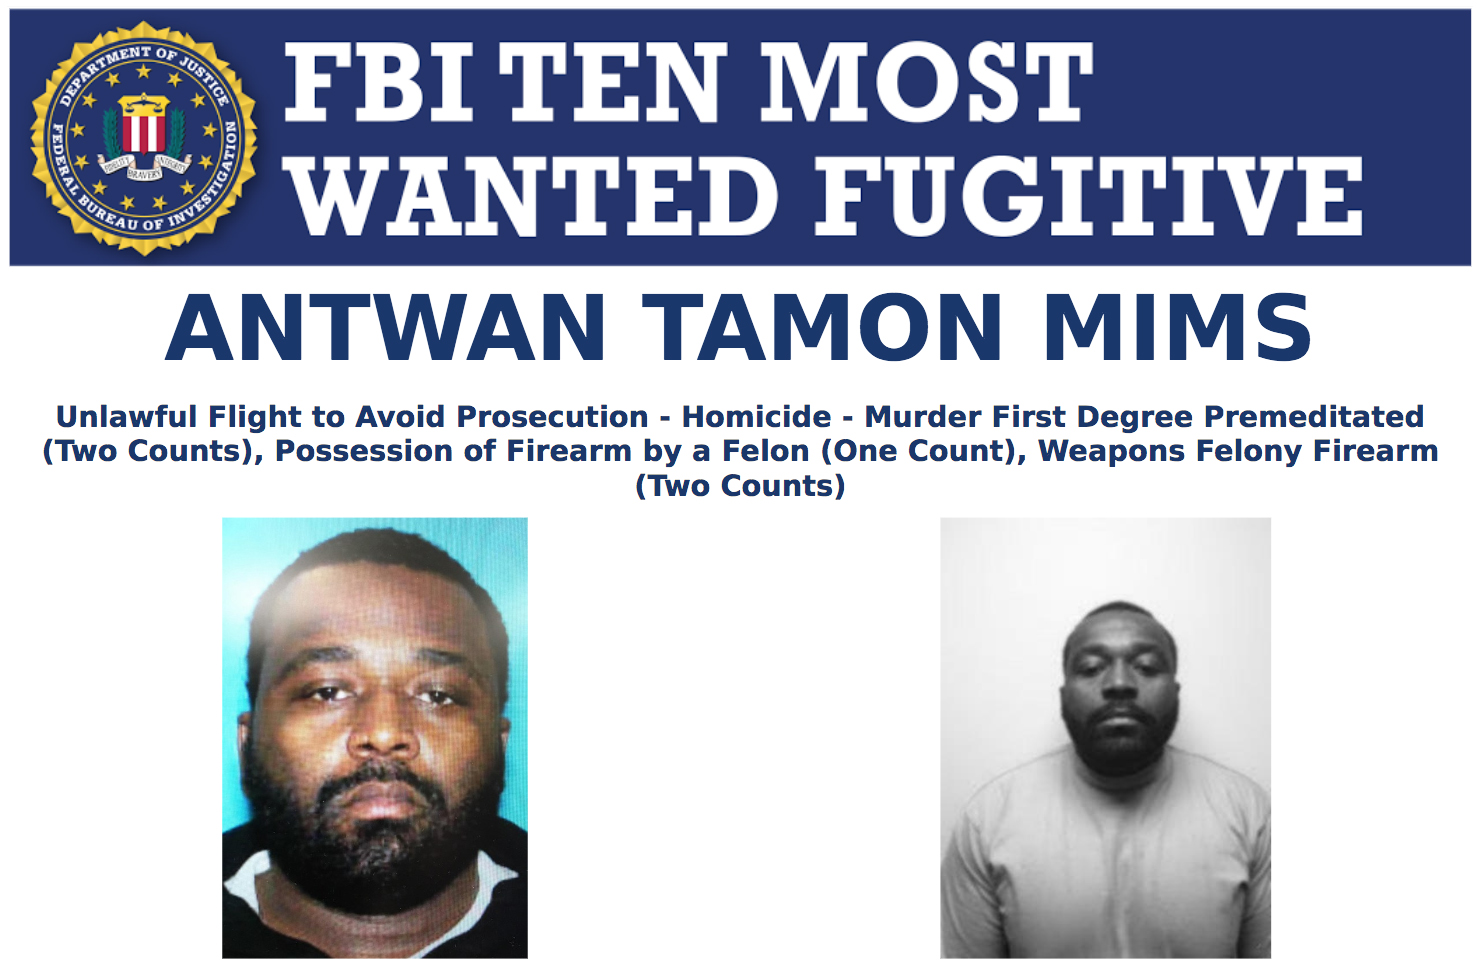 Screenshot of top portion of Antwan Tamon Mims' Ten Most Wanted Fugitive poster